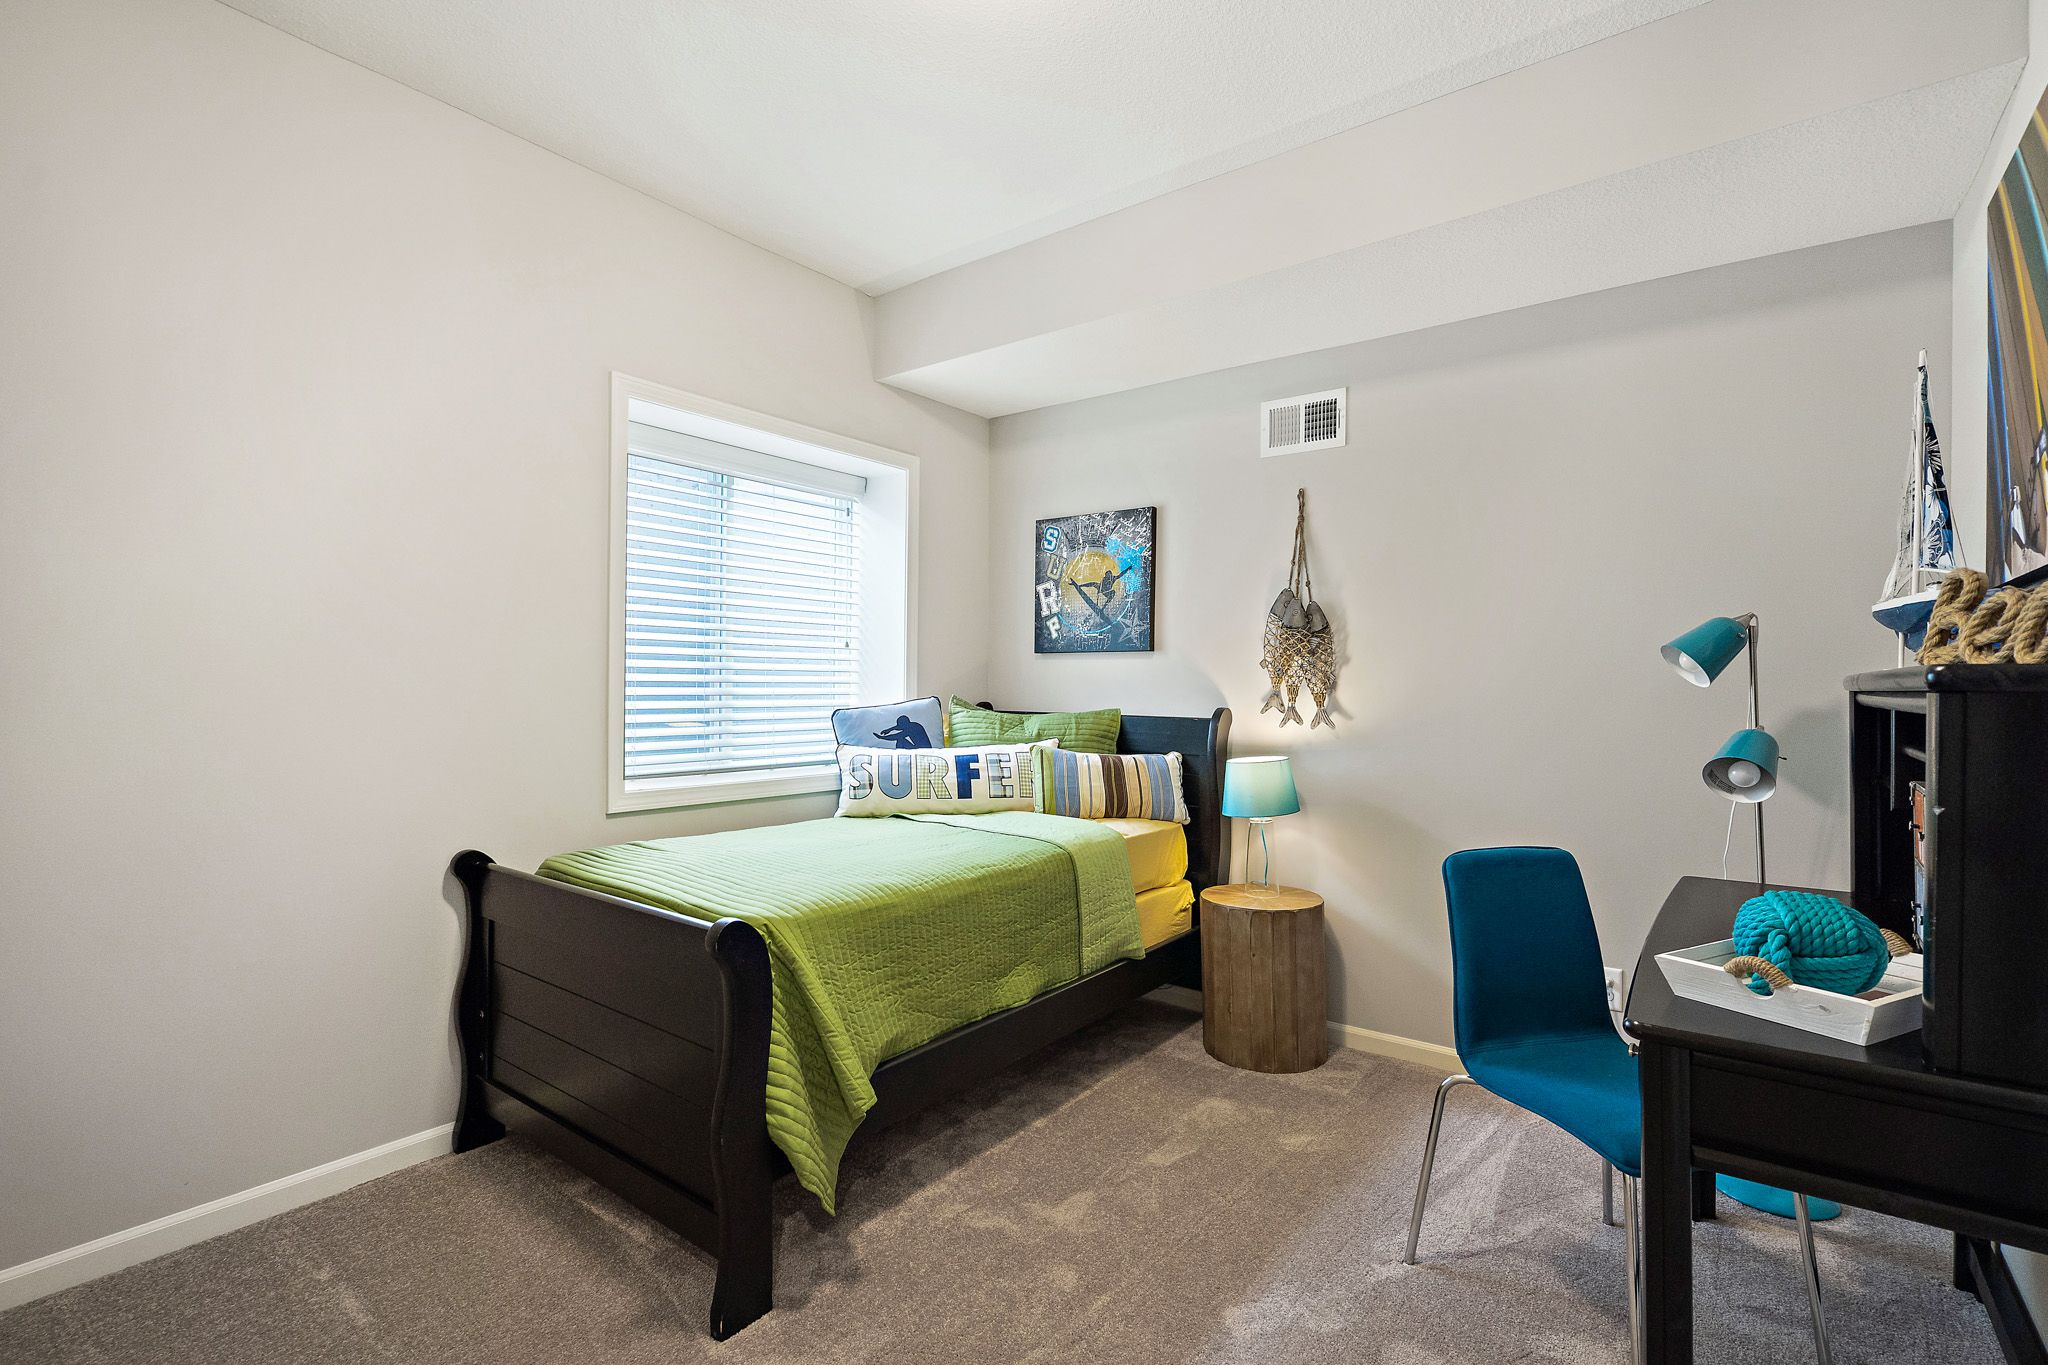 Bedroom featured in the Langston - Care Free By Summit Homes in Kansas City, MO